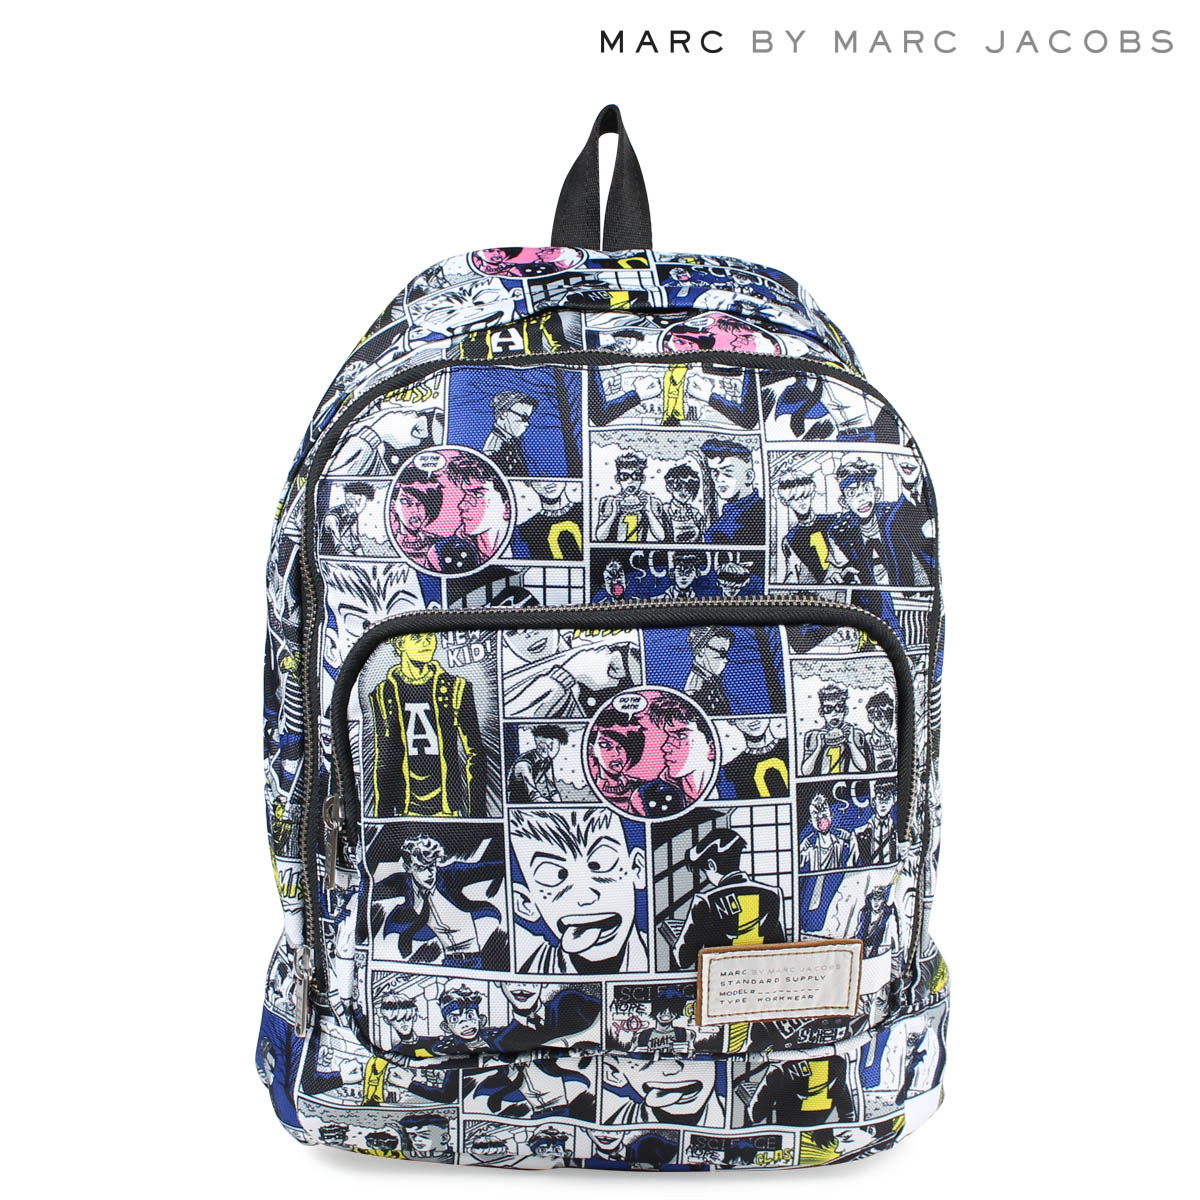 MARC BY MARC JACOBS マークバイマークジェイコブス バッグ リュック レディース バックパック M0006405 CARTOON BACKPACK ホワイト